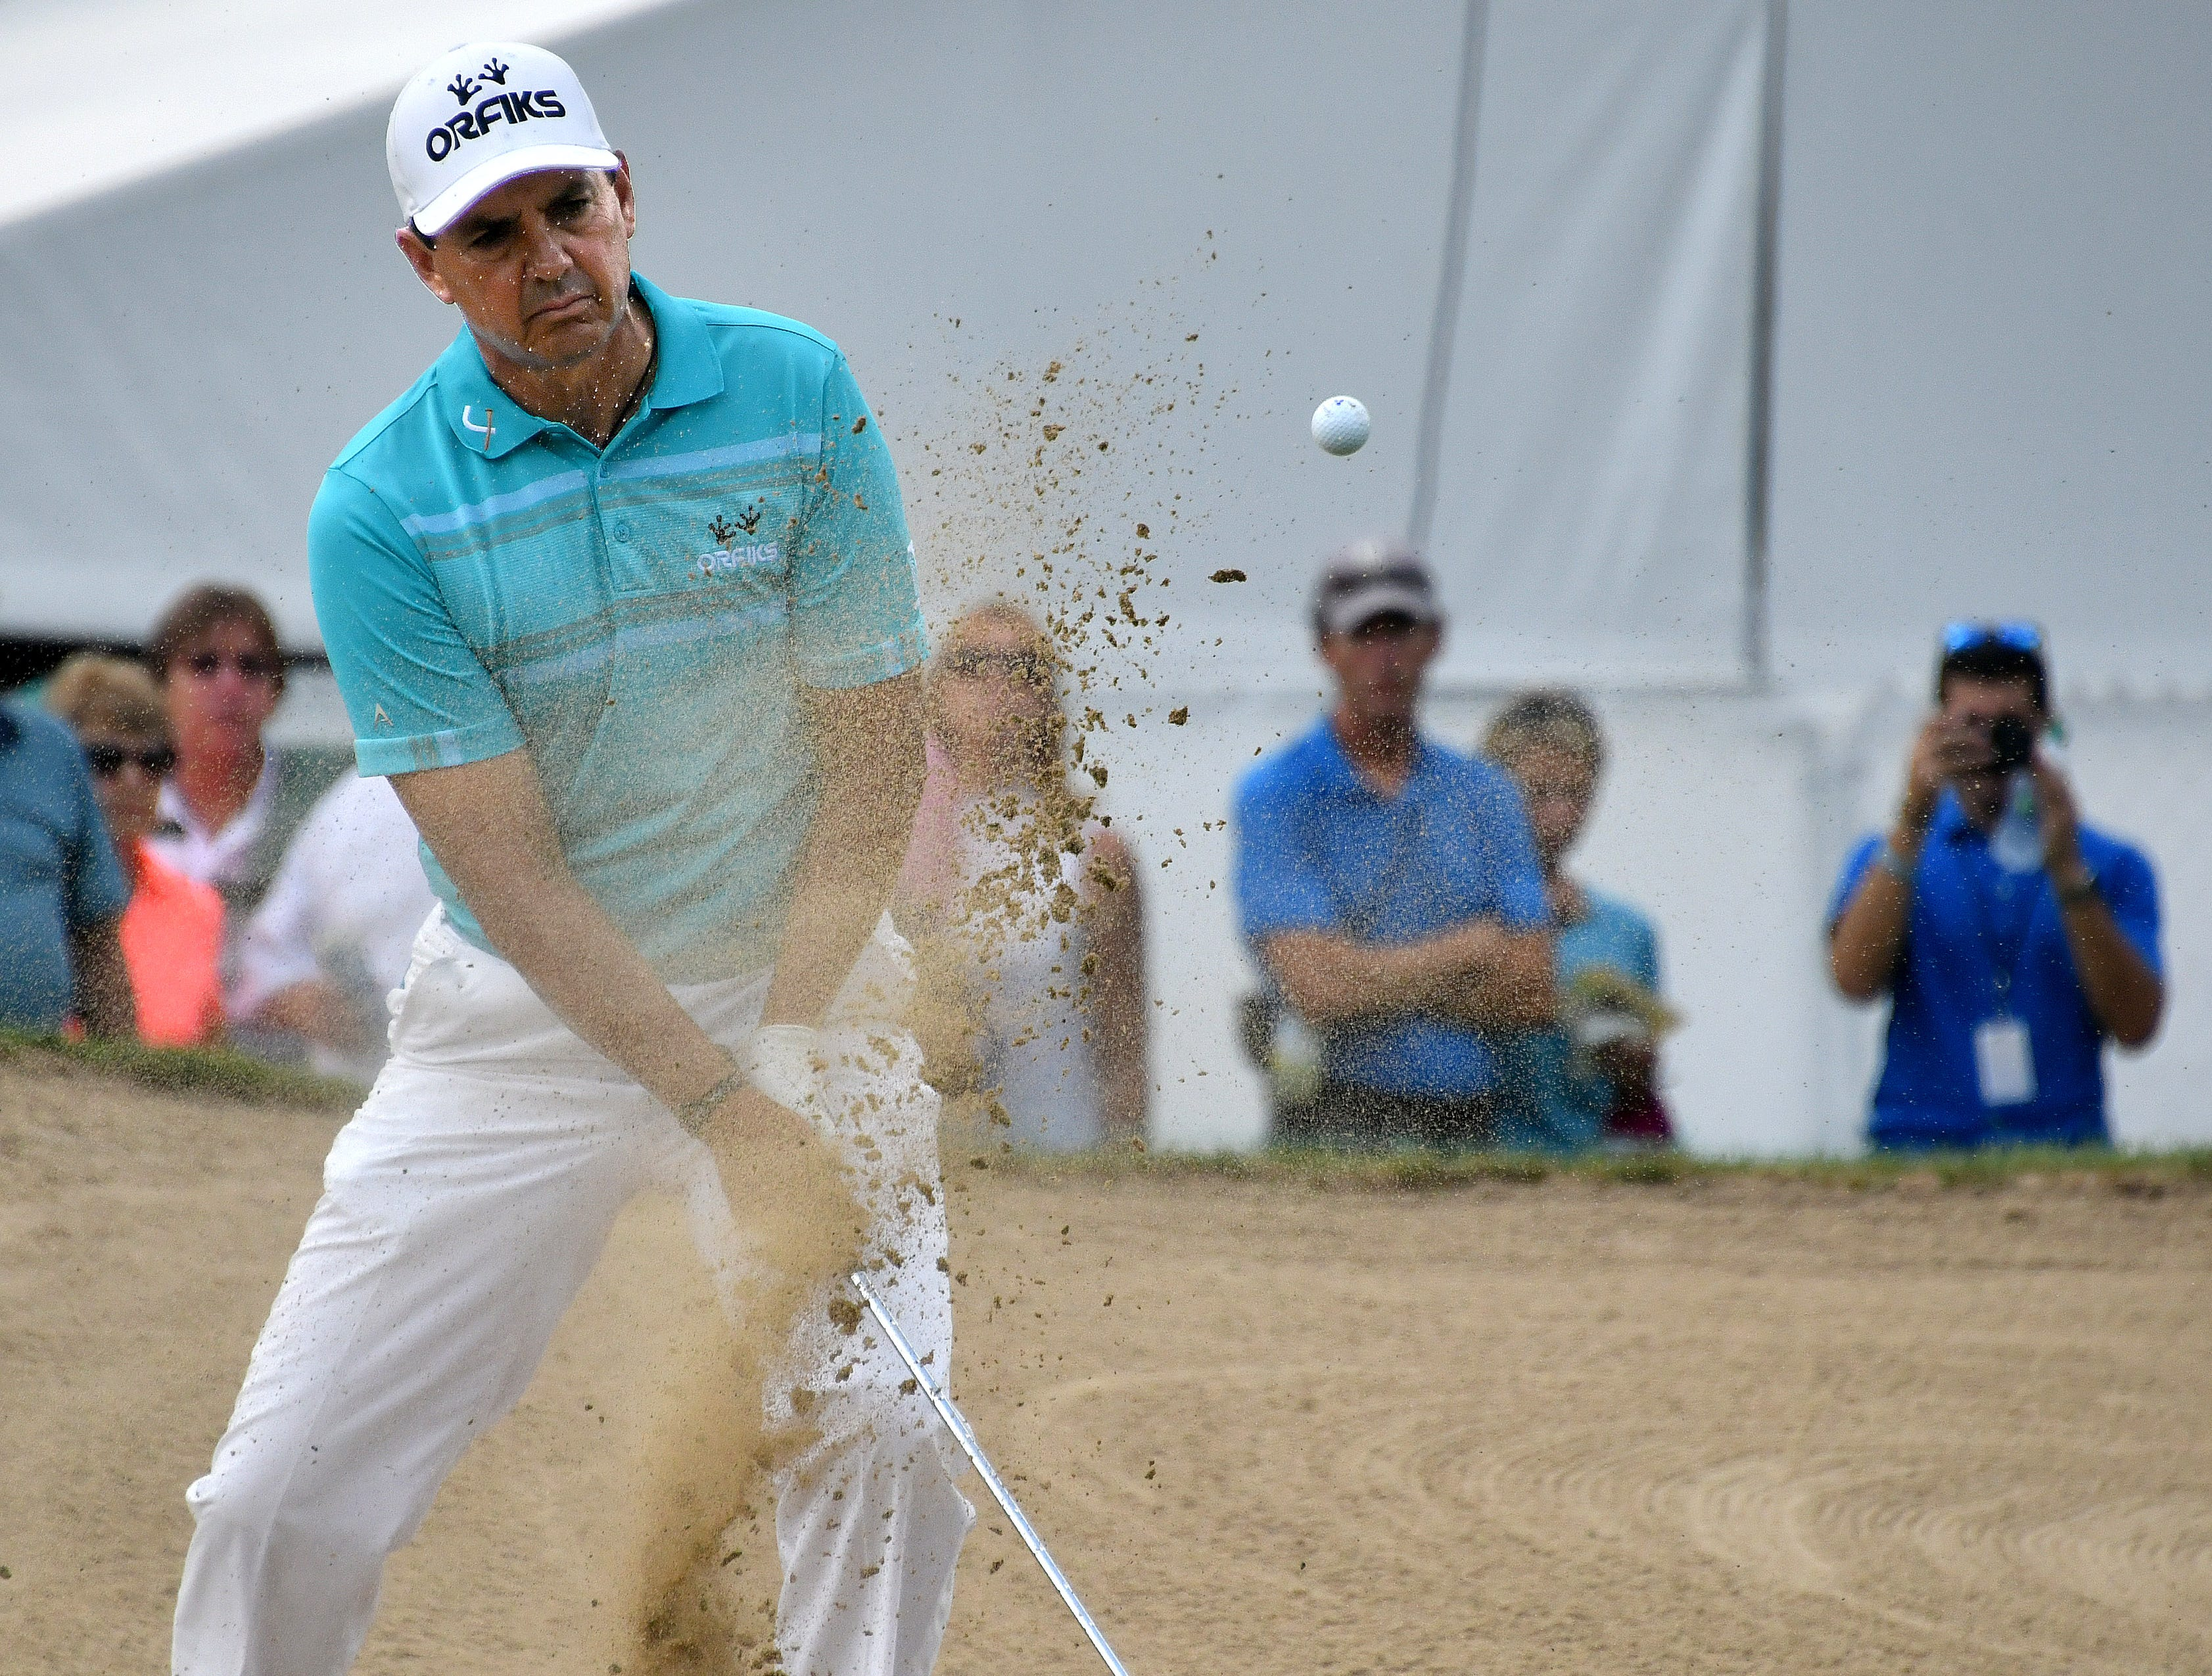 Tom Pernice hits out of the sand on the ninth hole on day one of the Ally Challenge.